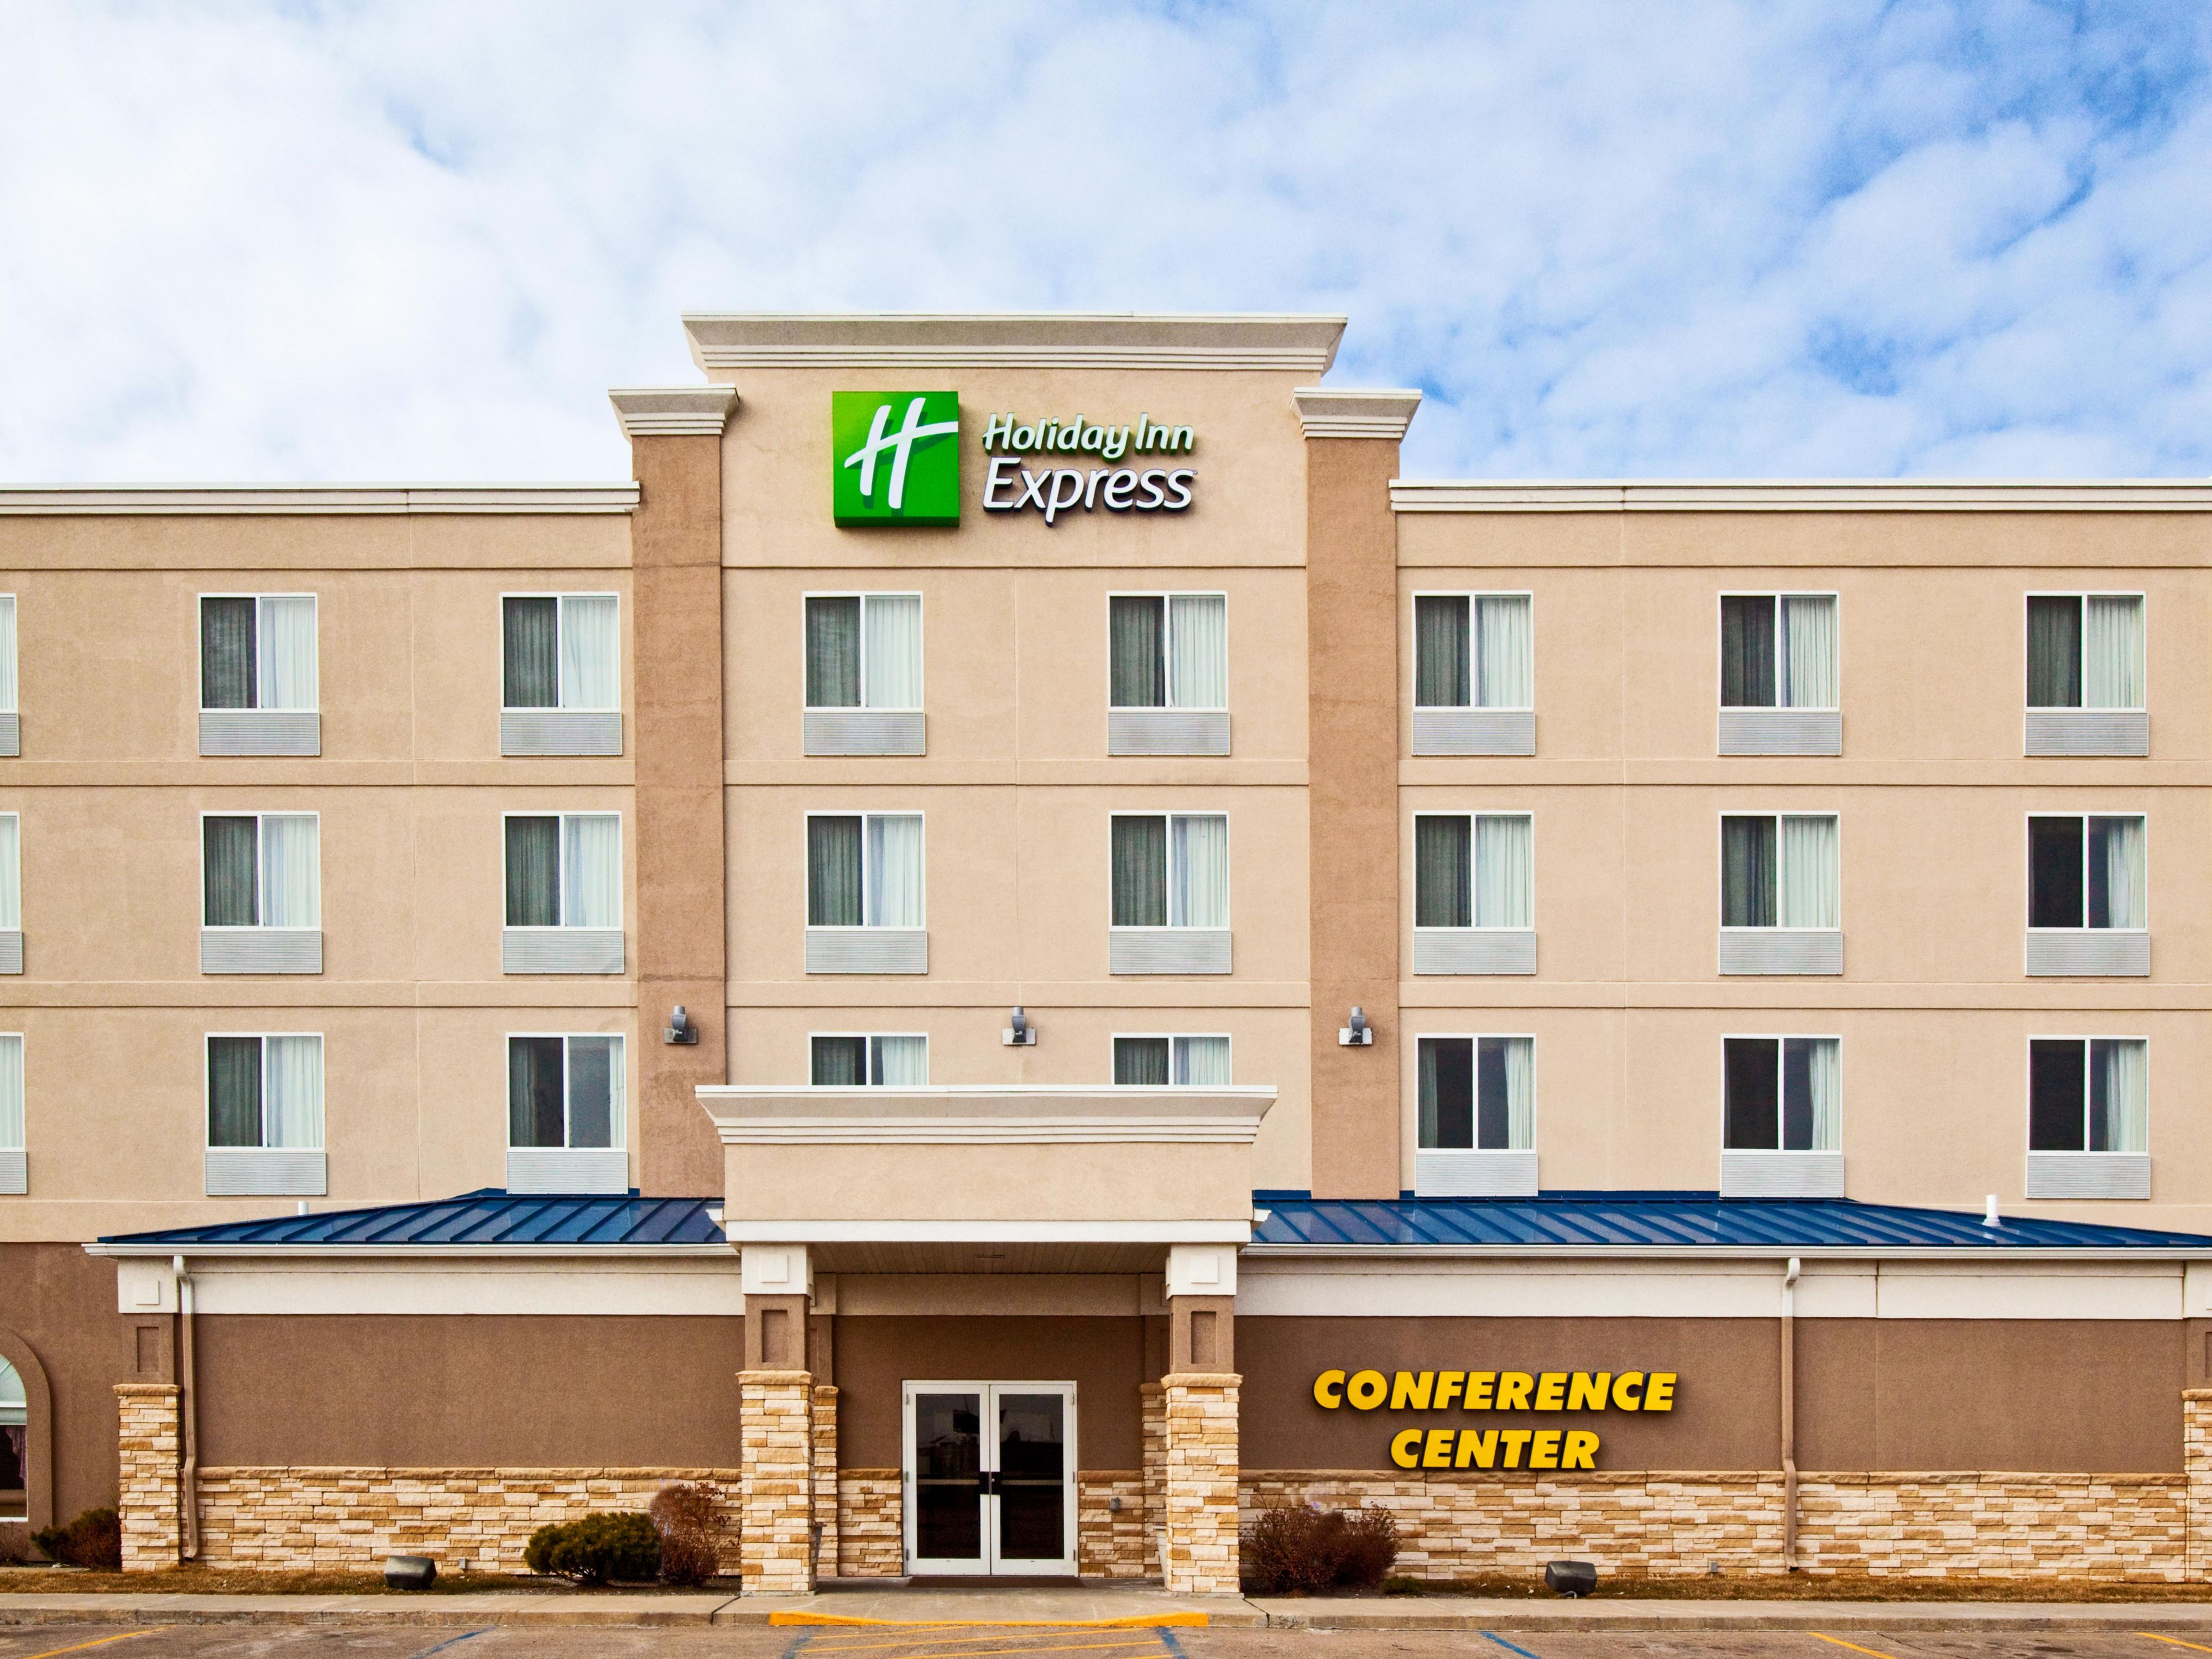 Holiday Inn & Suites North Platte & Conference Center Entrance